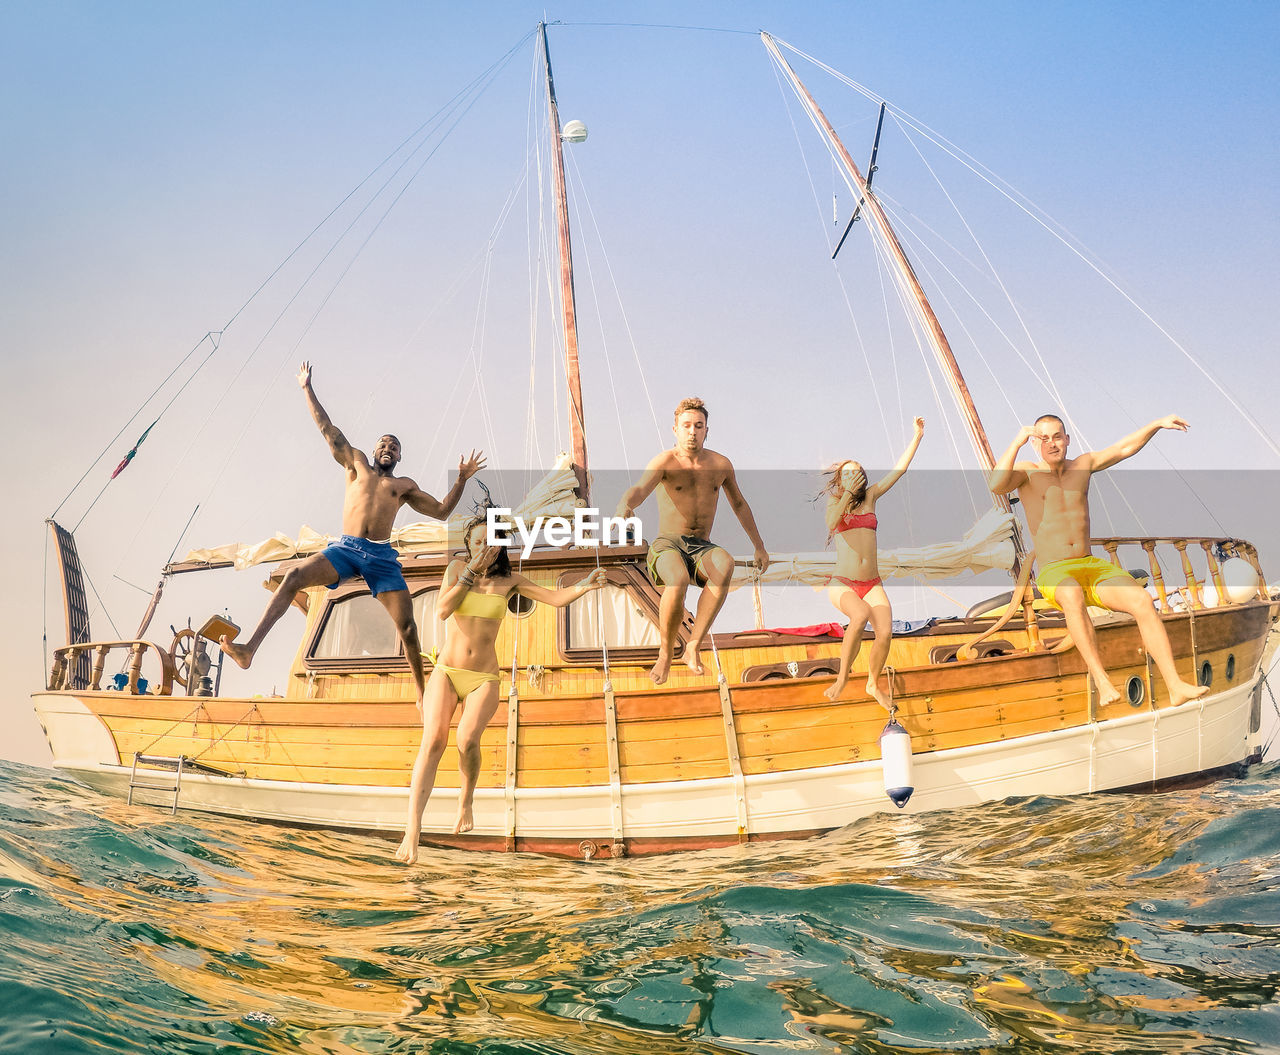 Low Angle View Of Friends Jumping From Boat In Sea